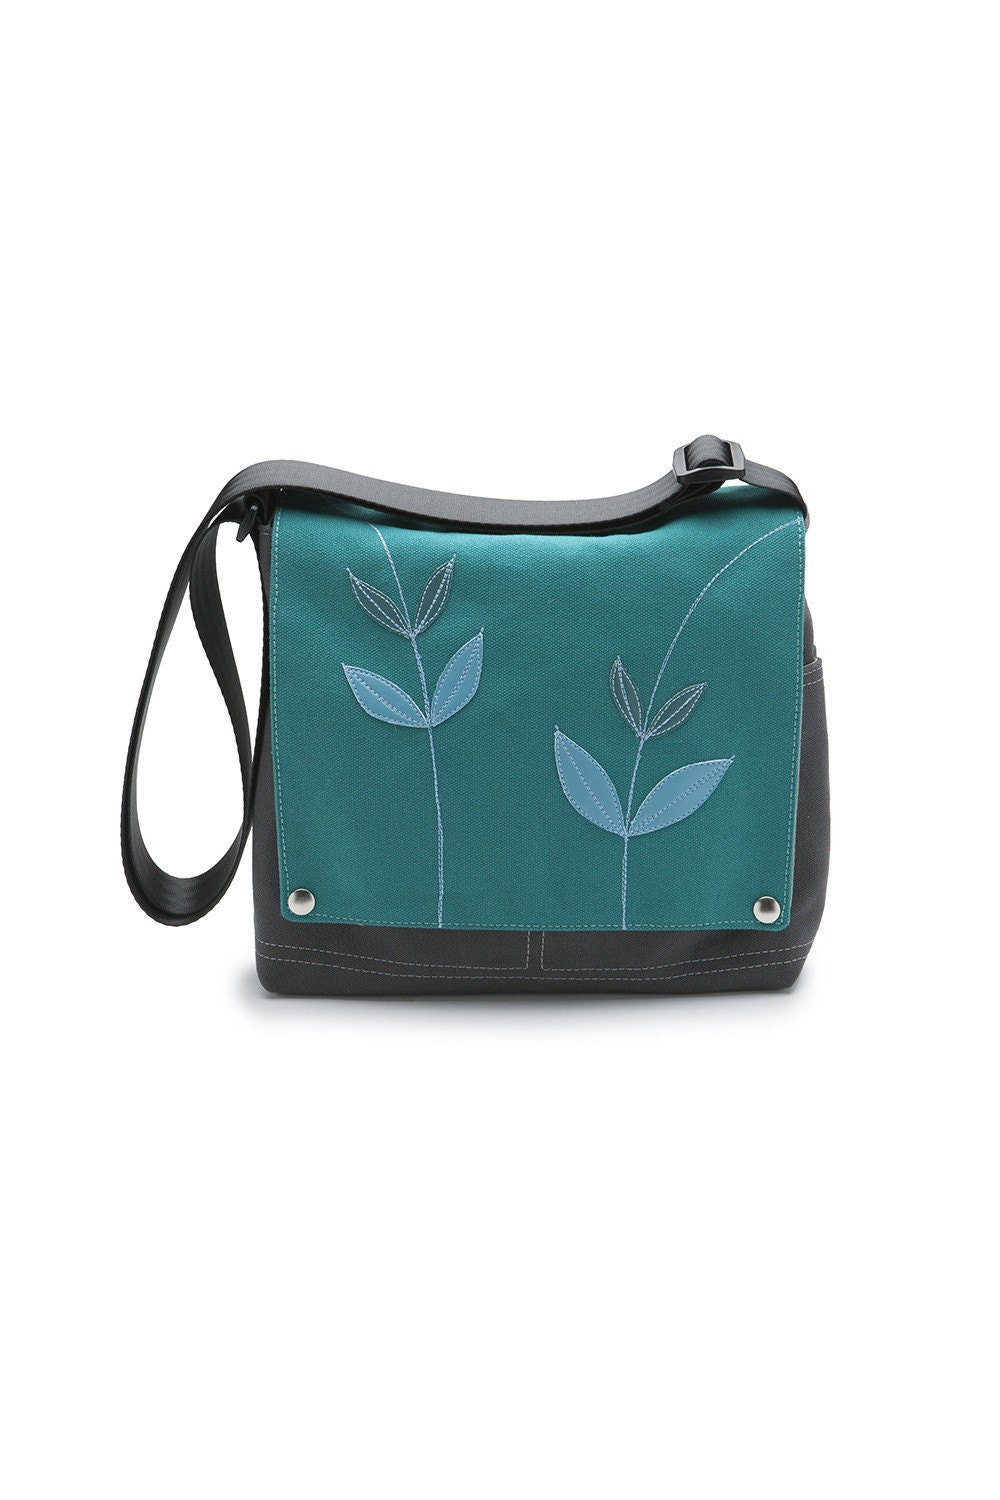 Canvas Truckette Bag - 'Twins' Green